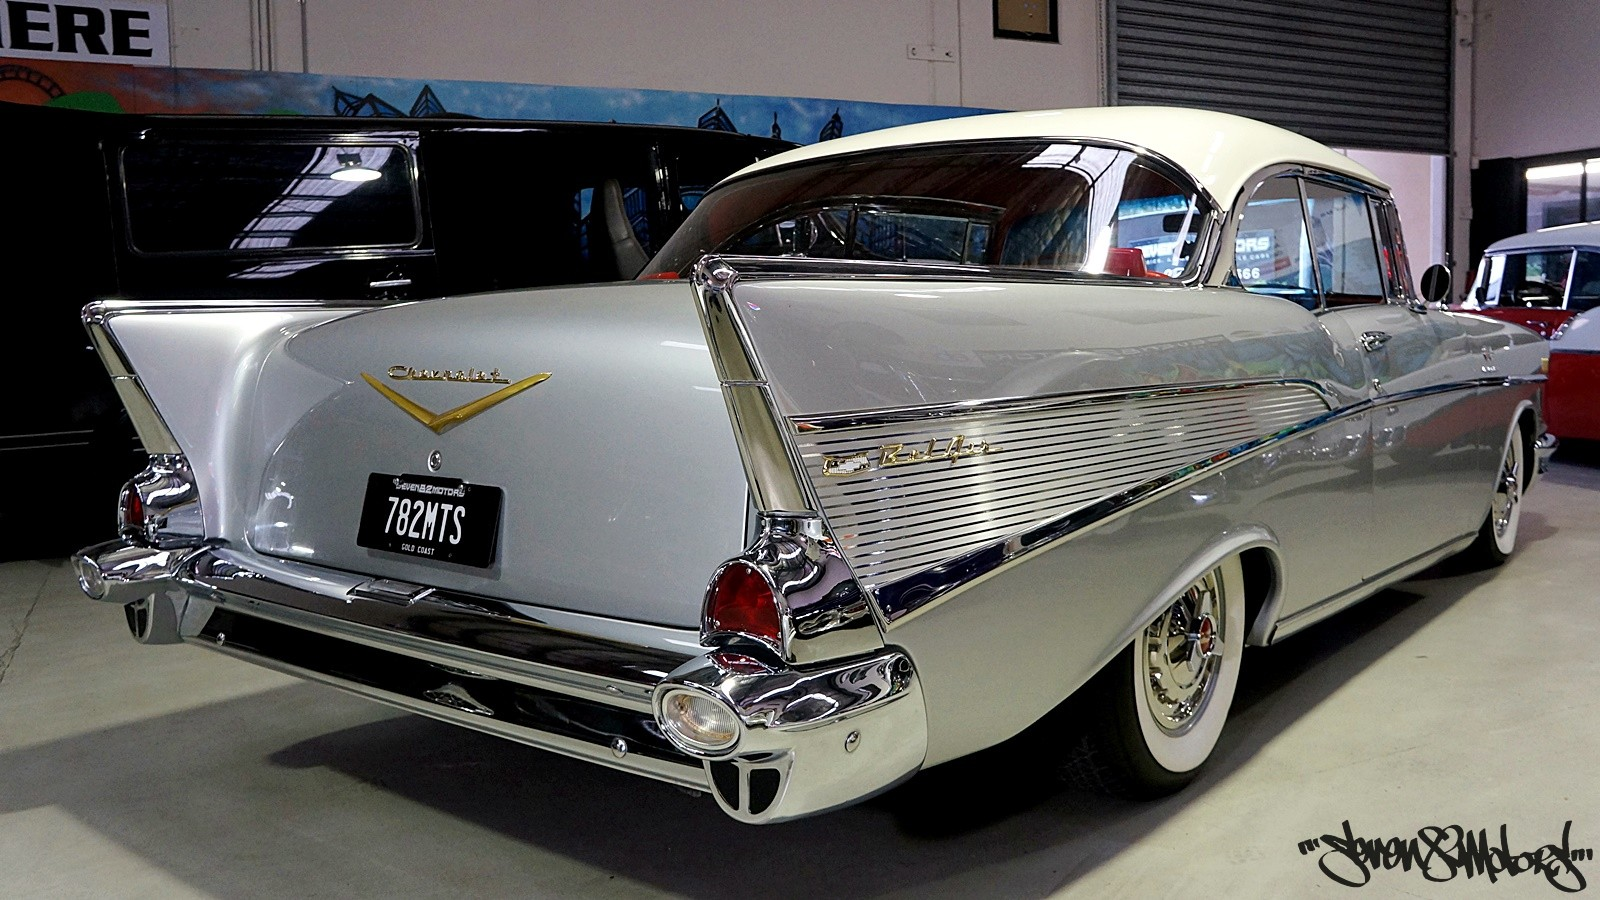 Seven82motors 1957 Chevy Belair Custom Build Michaelieclark Bel Air Convertible Lowrider It Is The Responsibility Of Buyer To Have Thoroughly Inspected Vehicle And